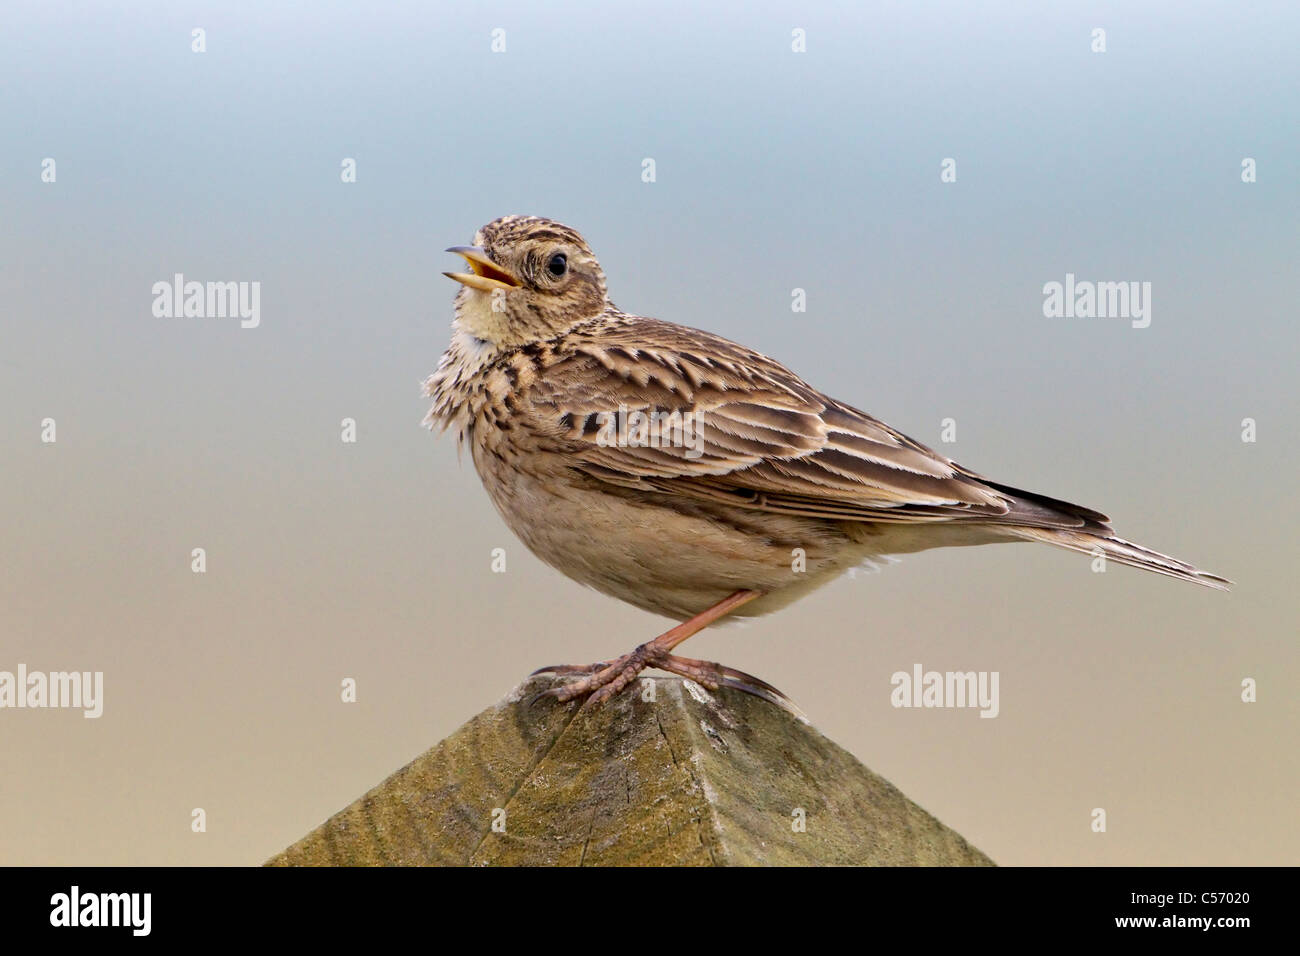 An adult Skylark singing - Stock Image